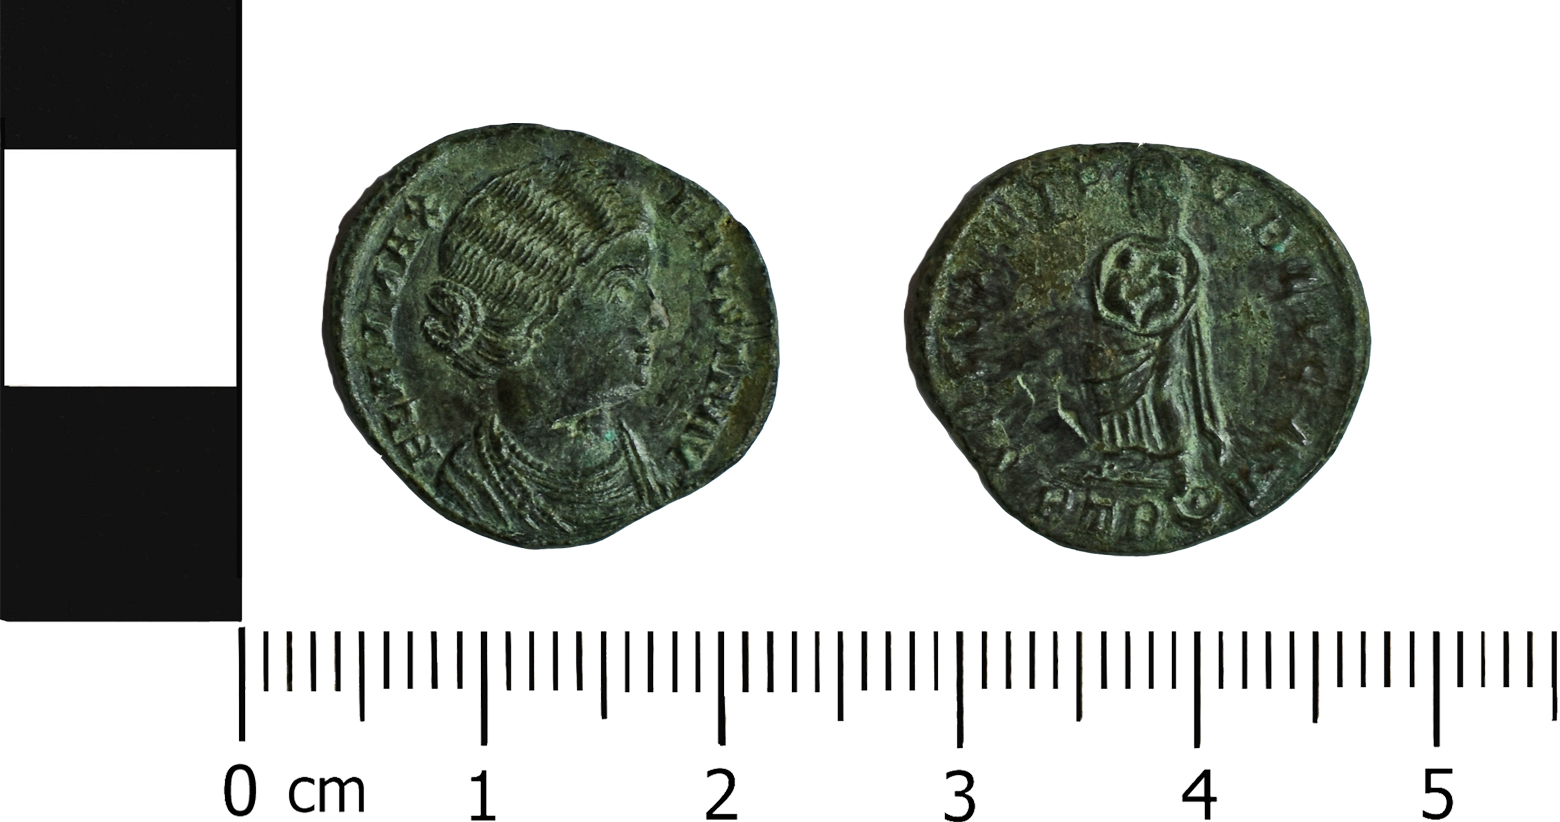 (MOL.208.75.276 Obverse: Fausta, Reverse: Fausta (as Salus) cradling her two sons- Constantine II and Constantinus II, Minted in Trier)